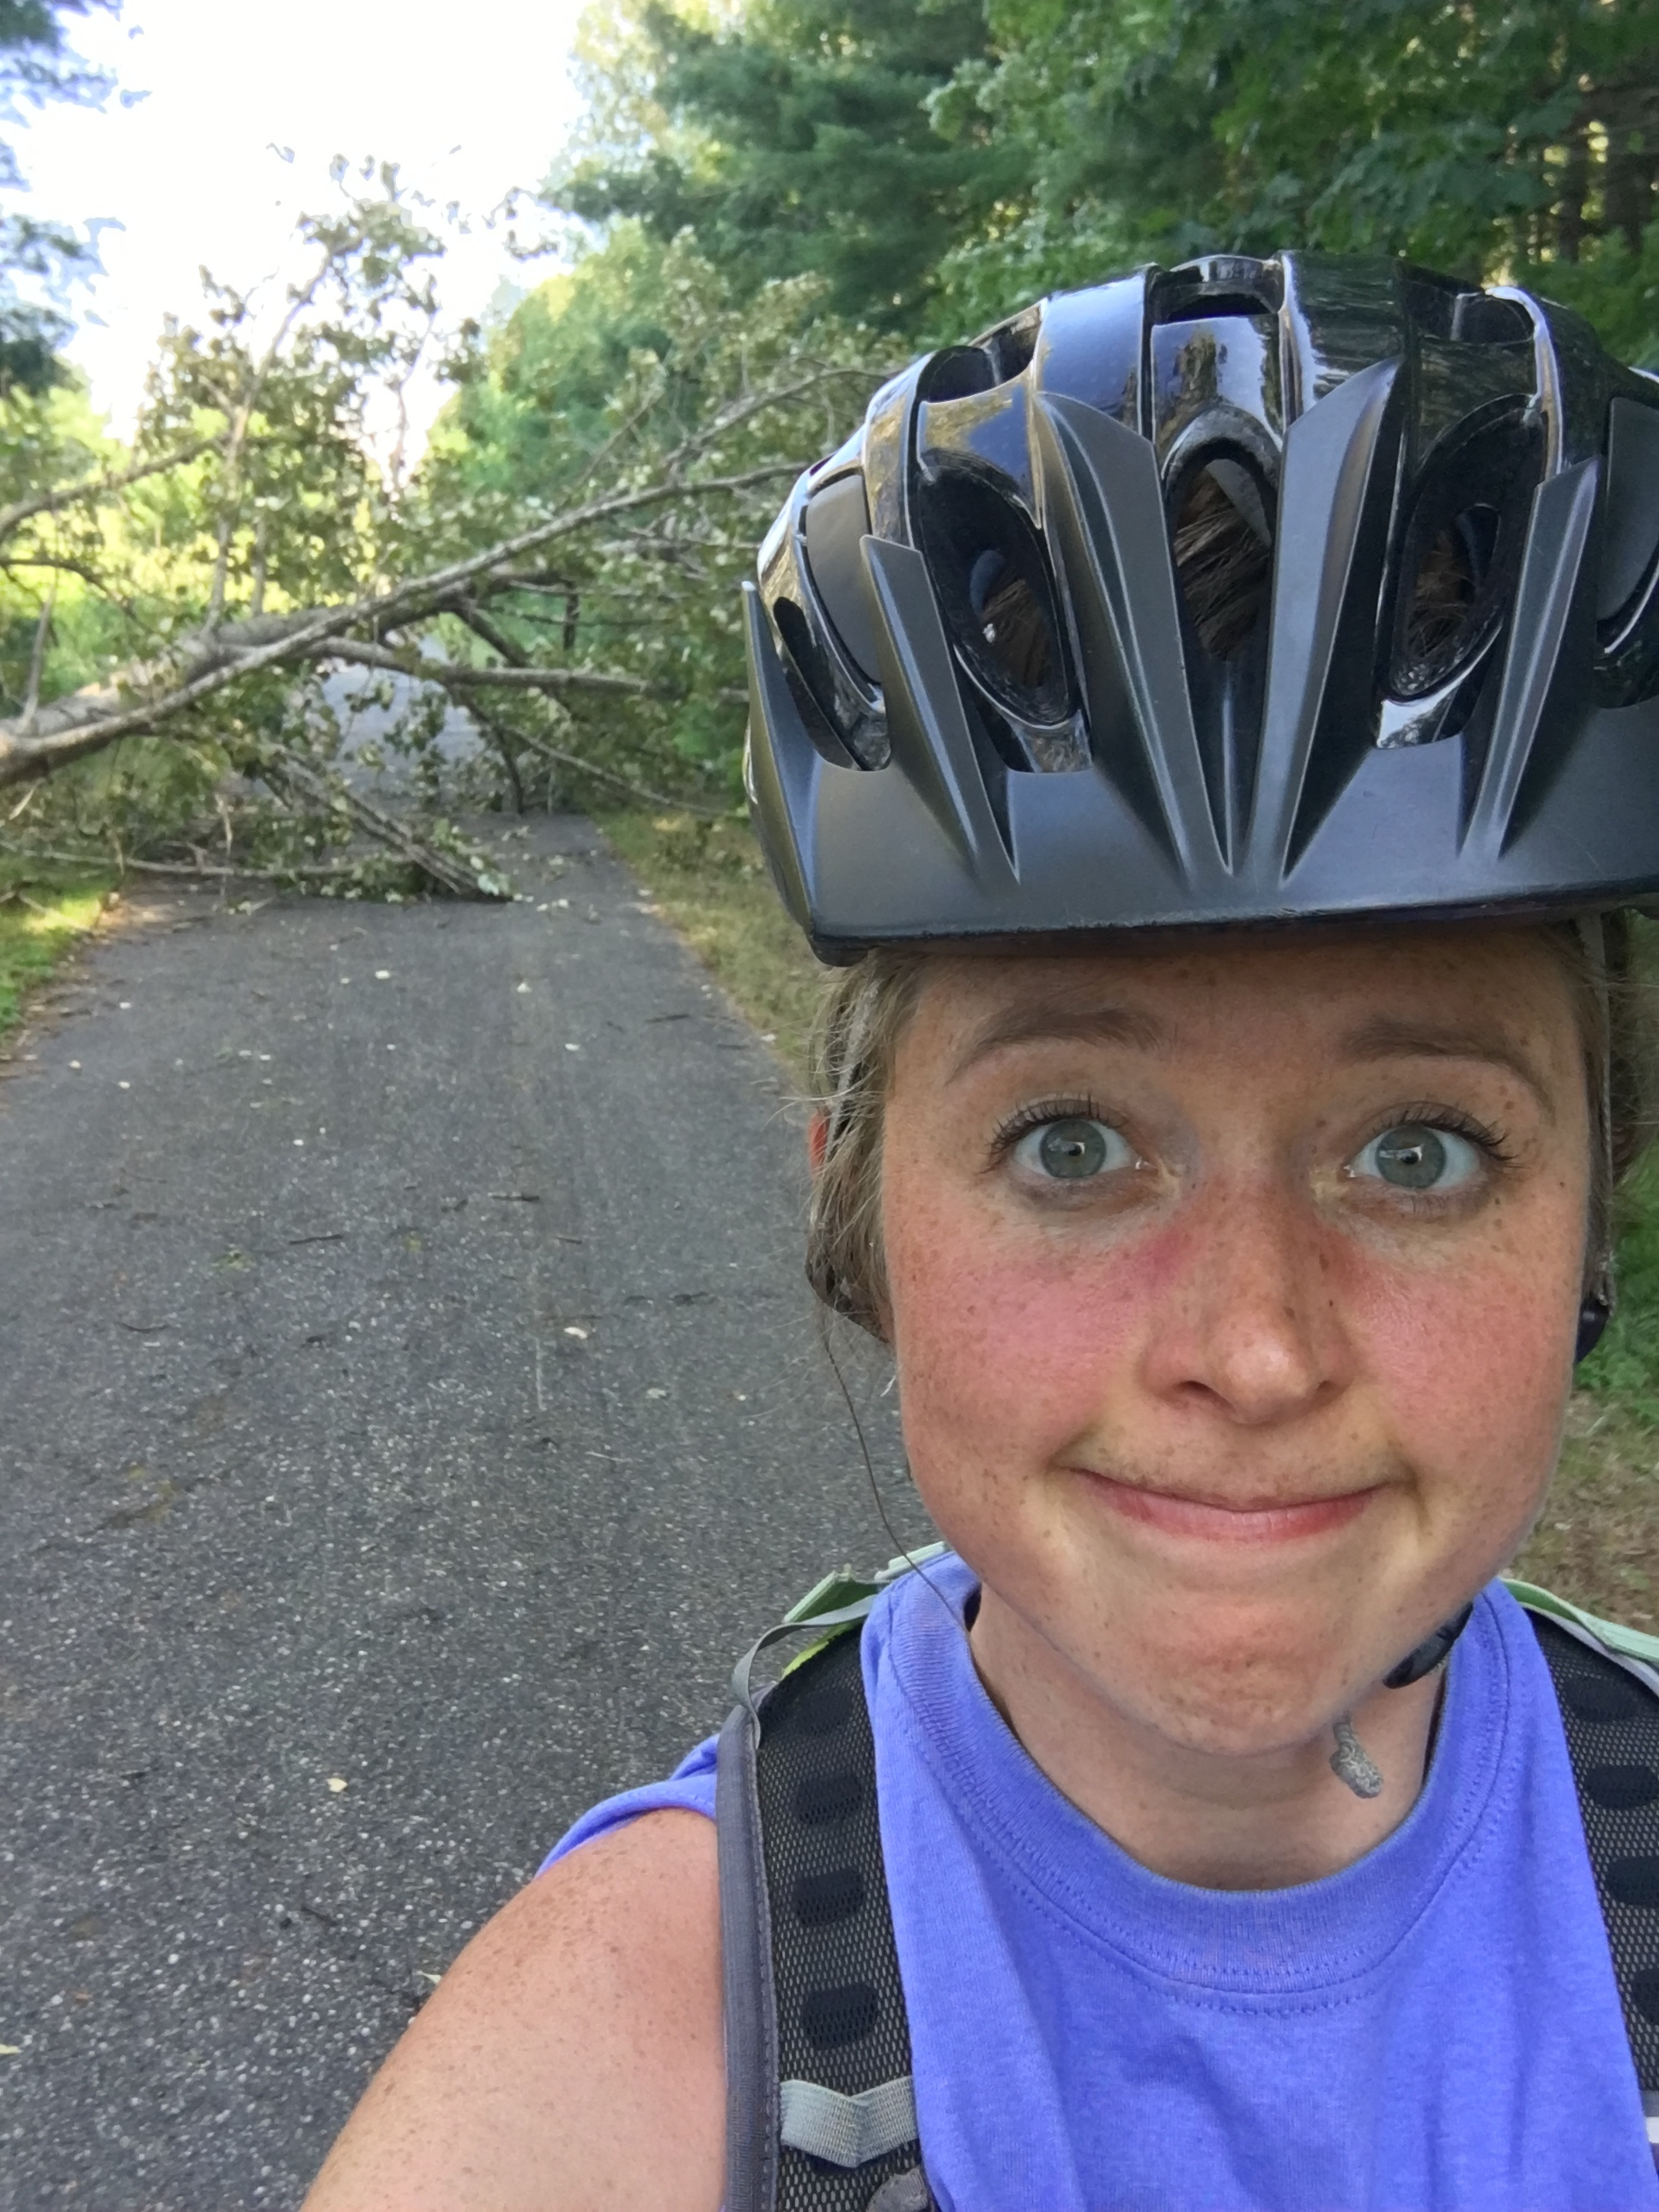 Biking in northern Michigan poses slightly different road hazards than biking in downtown Chicago . . .